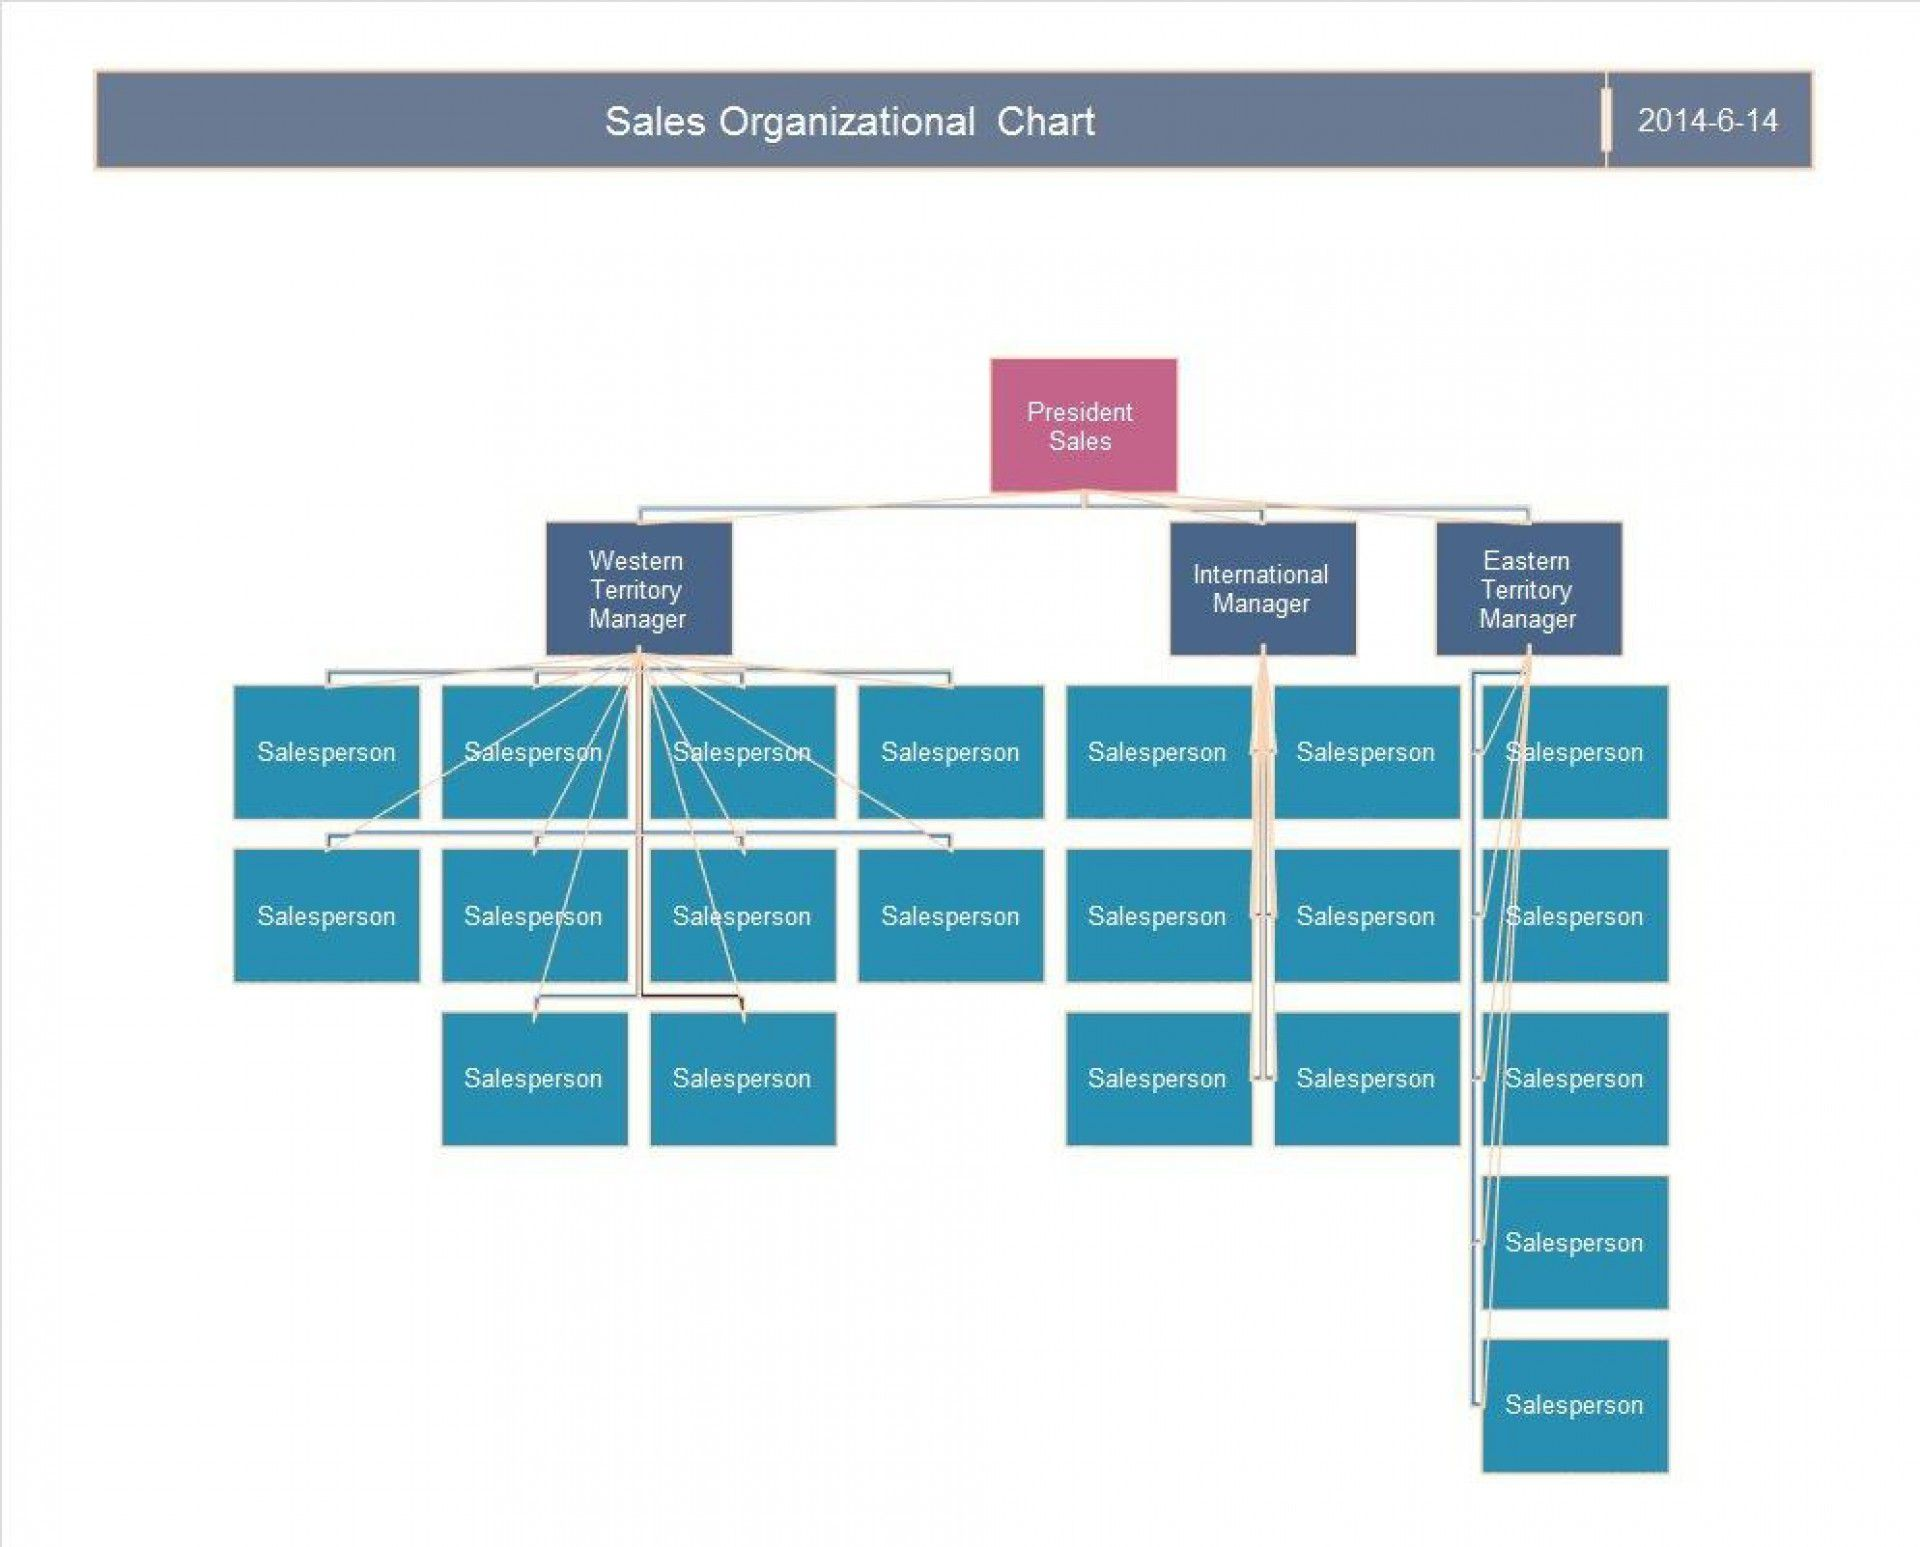 007 Remarkable Microsoft Organizational Chart Template Word Concept  Free 2013 HierarchyFull